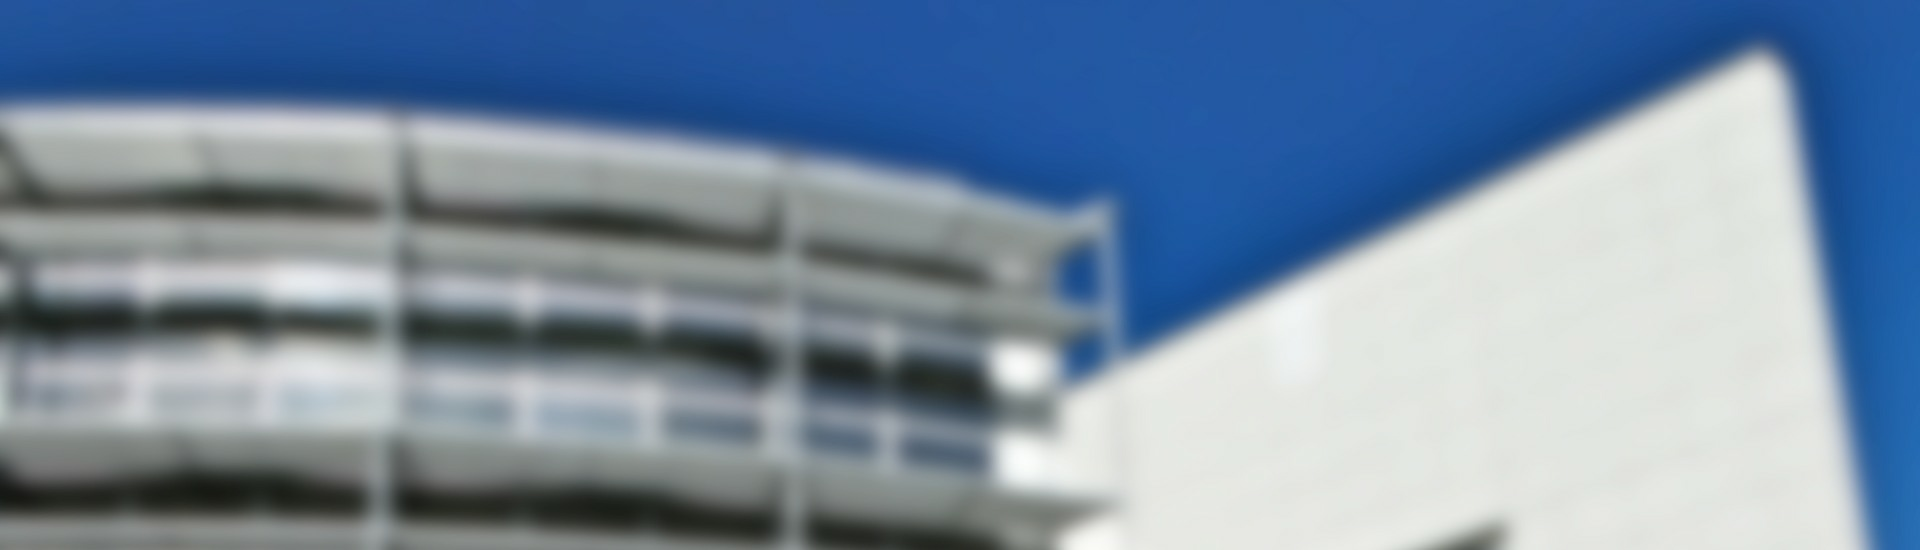 Top page blurred picture of a building